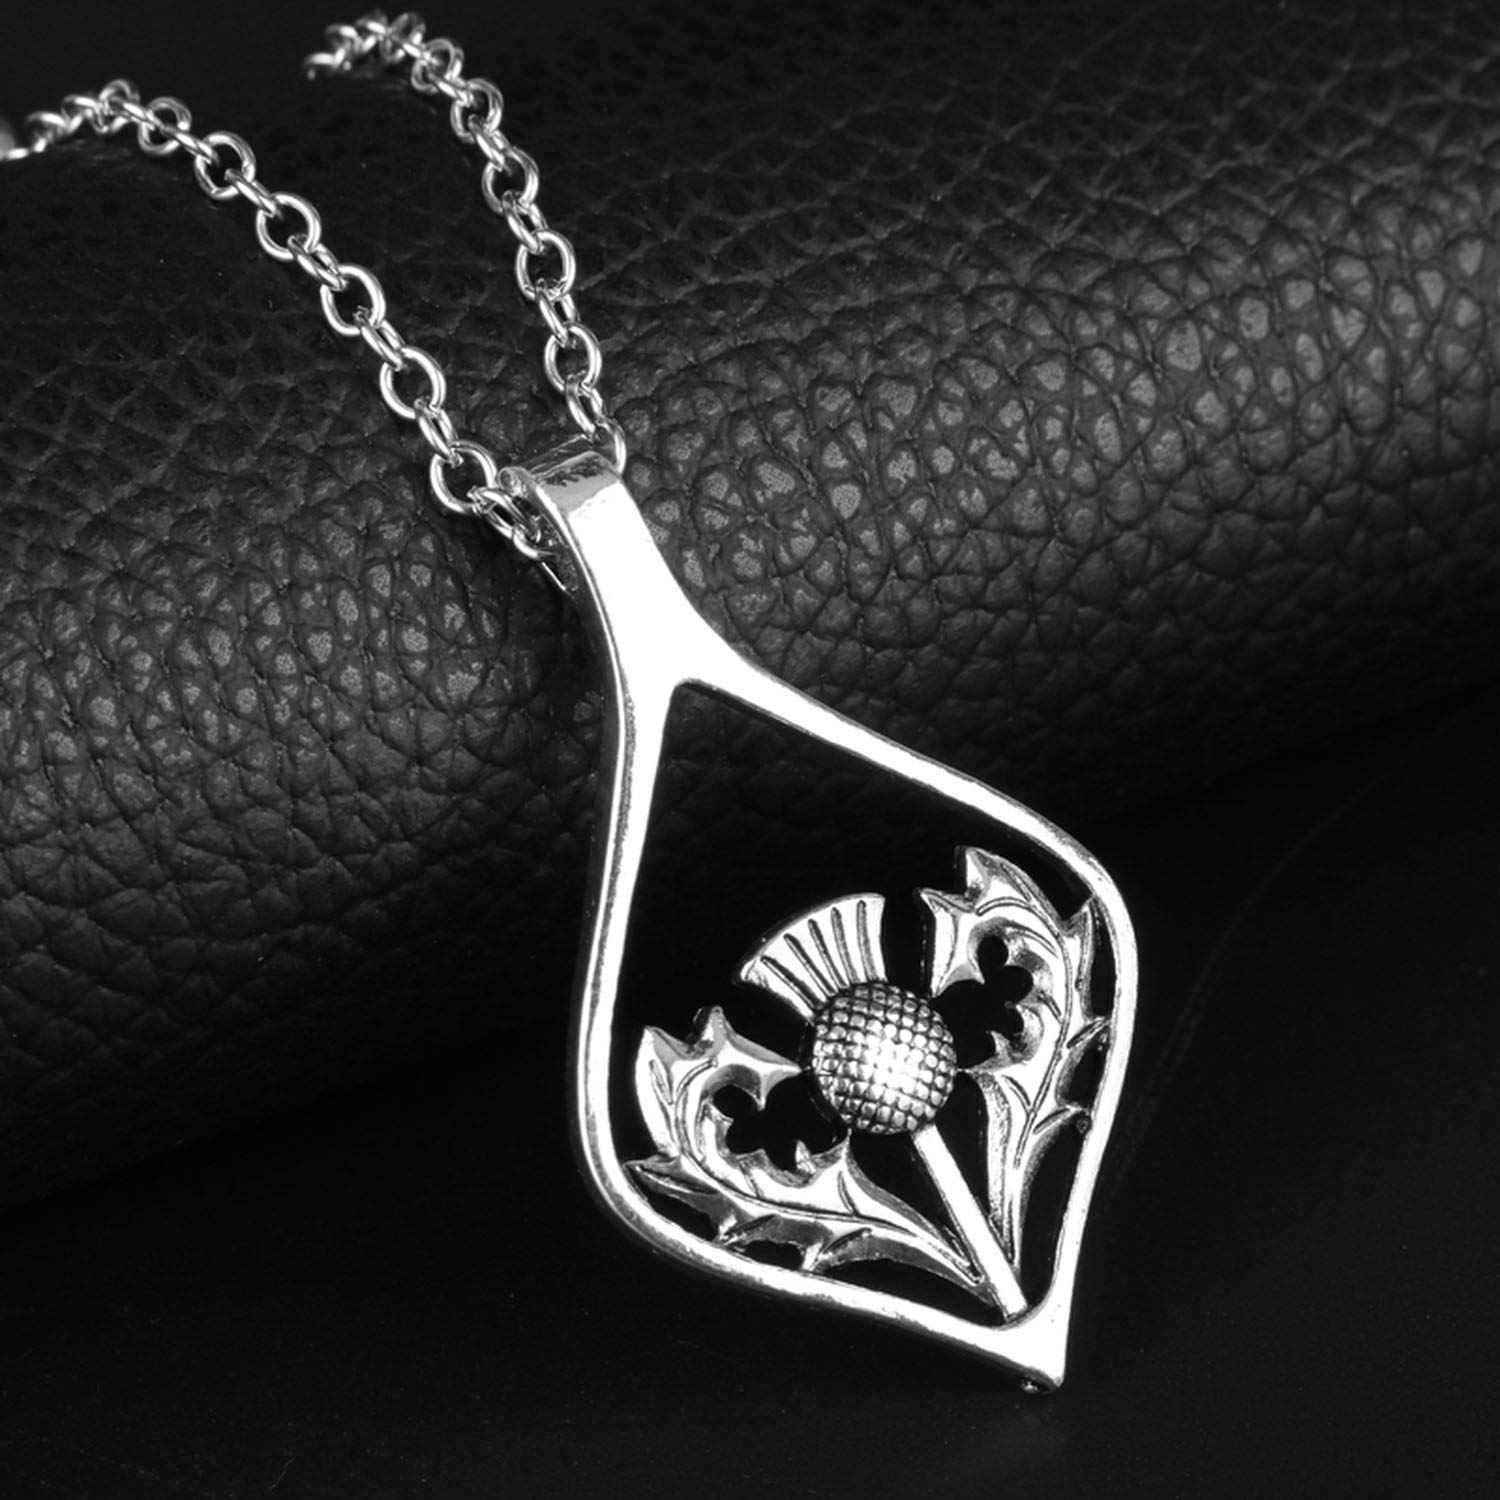 Vintage Silver Color Oval Pendant Emblem Necklace National Symbol of Jewelry for Men Women Gifts